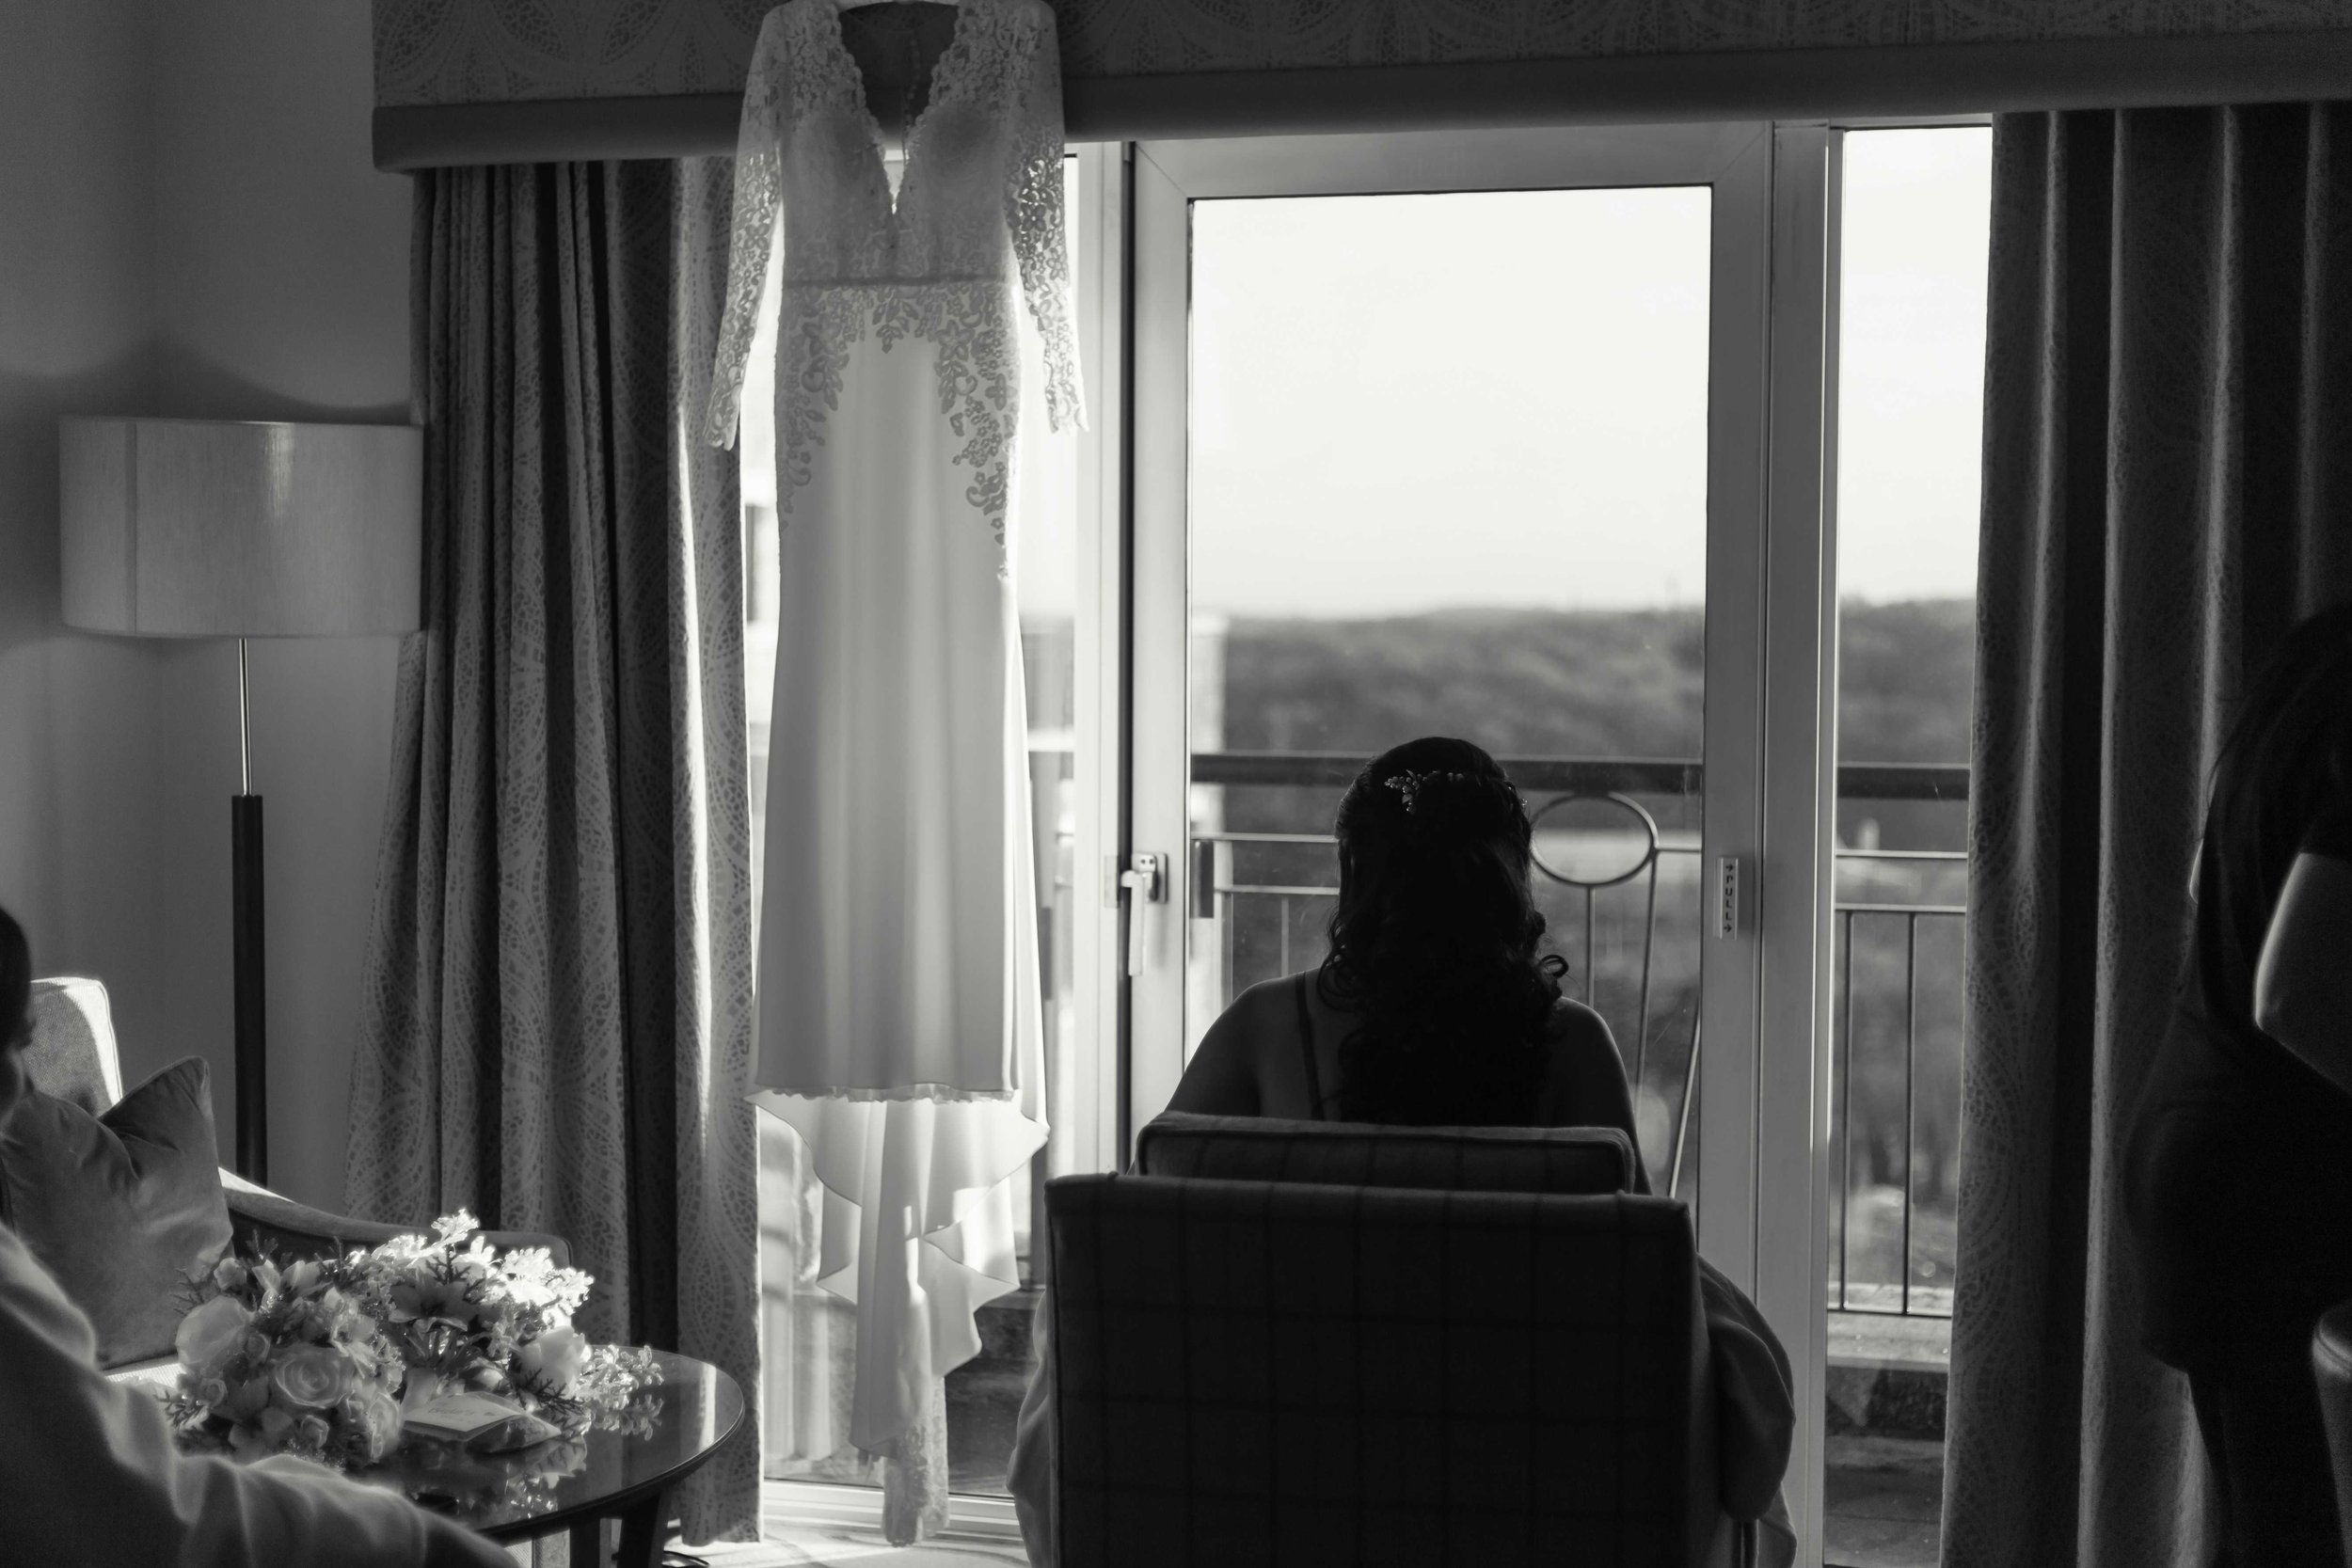 Black and white photograph of bride sitting and looking out of window